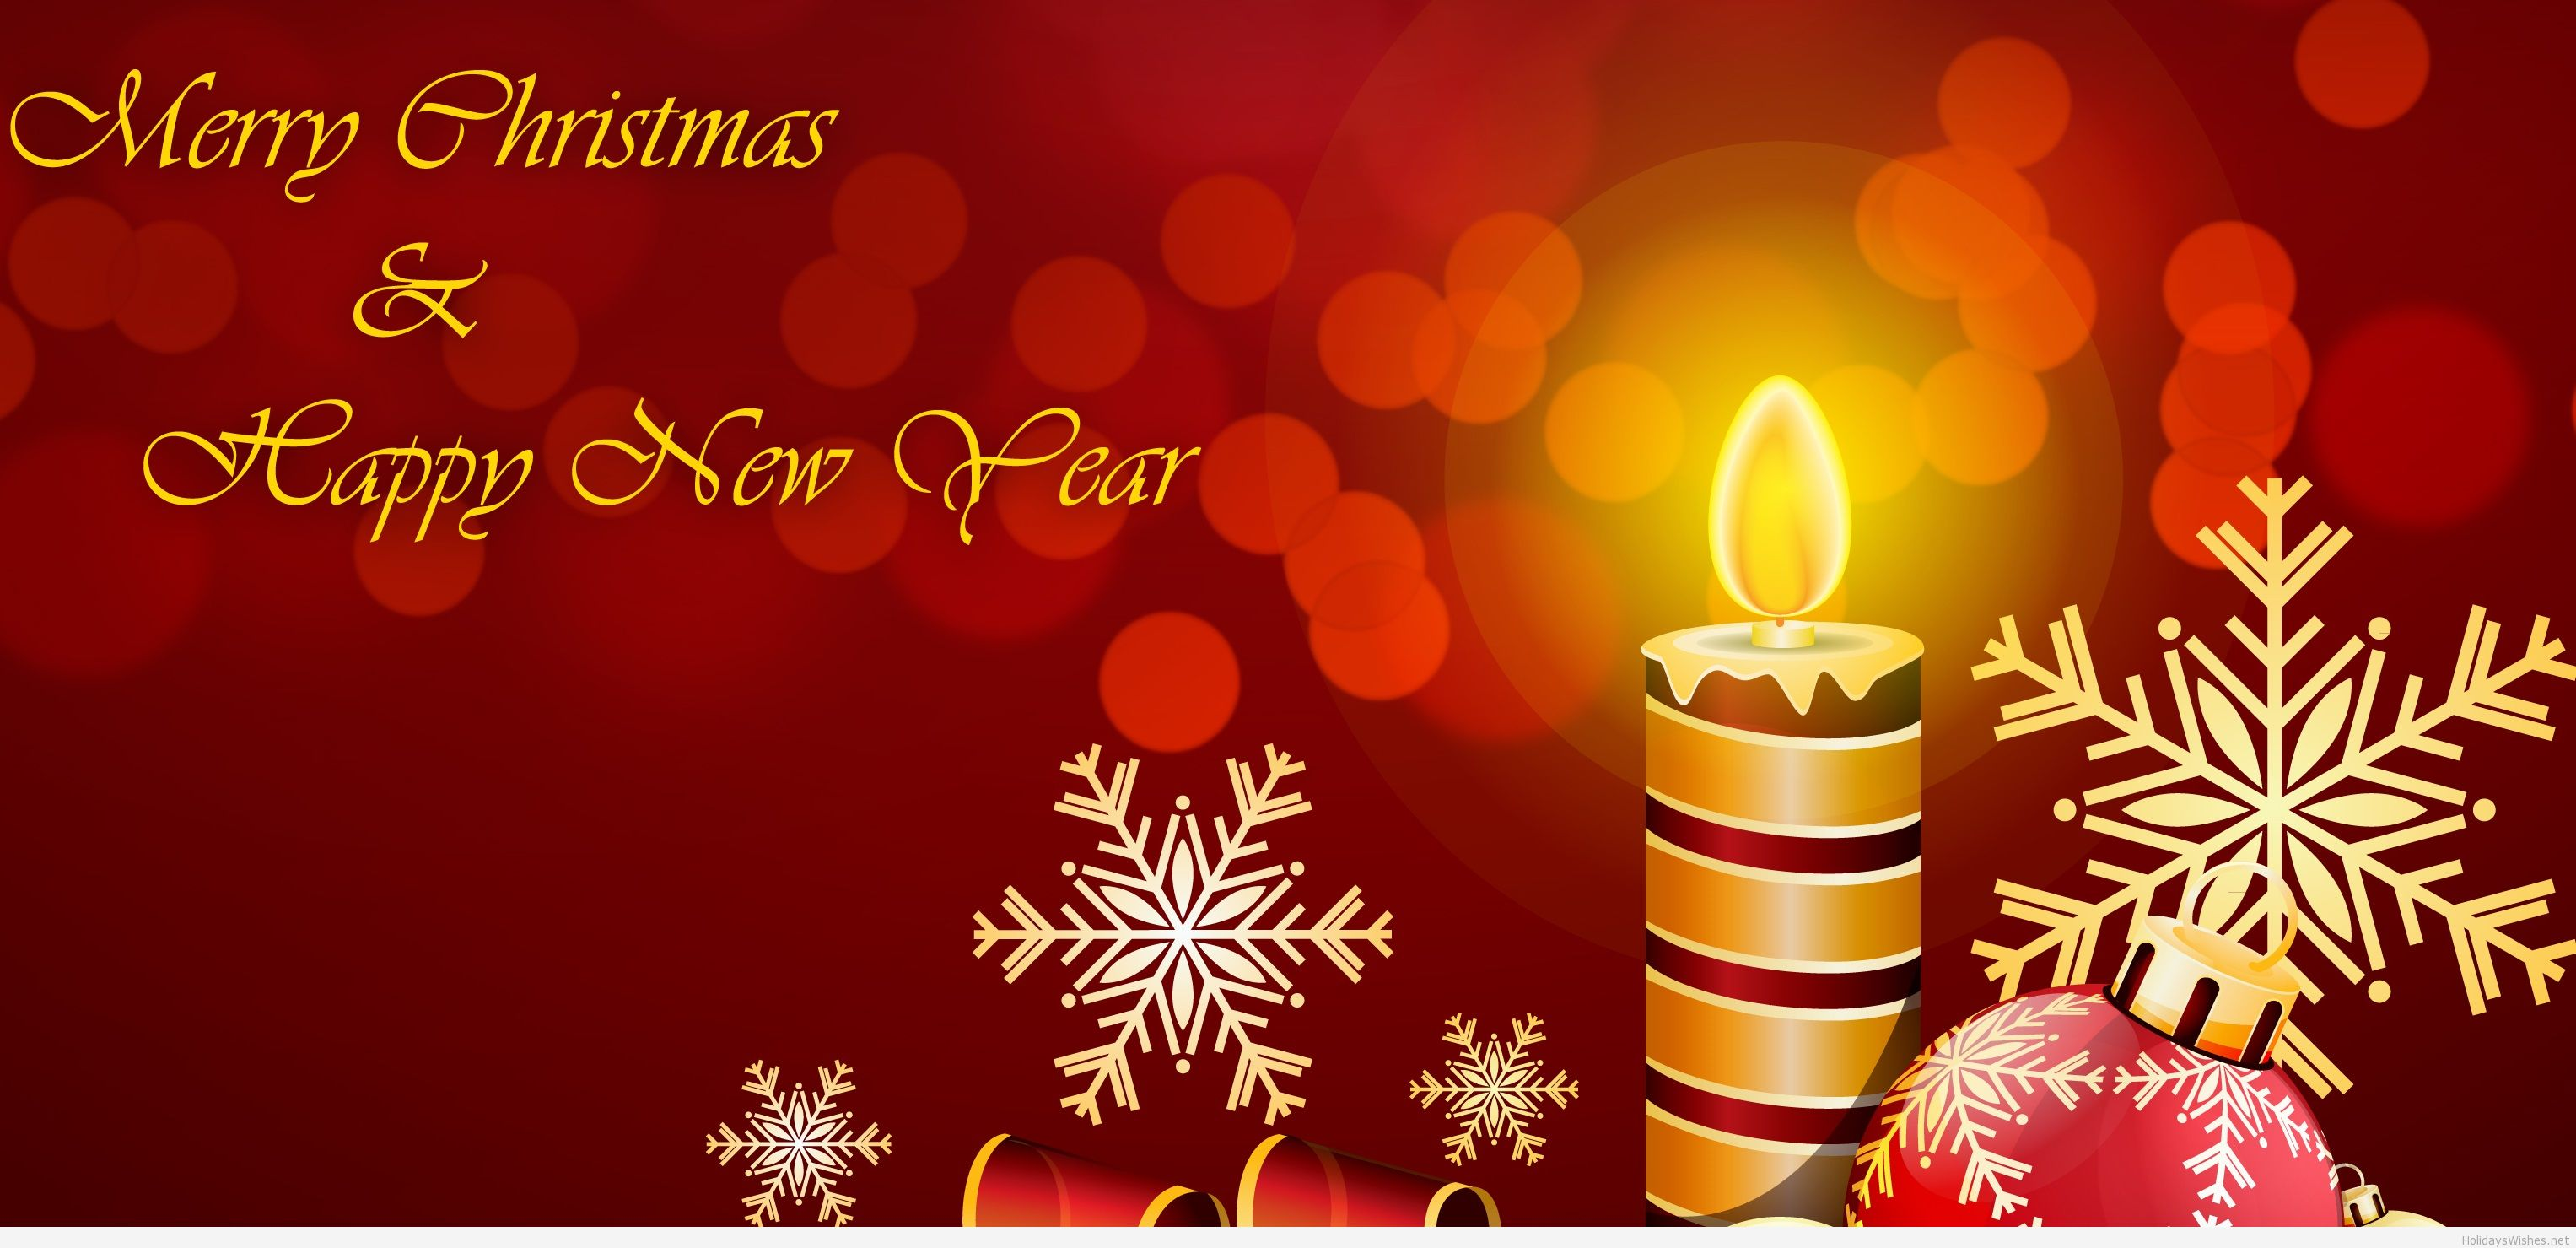 Merry Christmas And Happy New Year Greeting Card With Snowflakes On